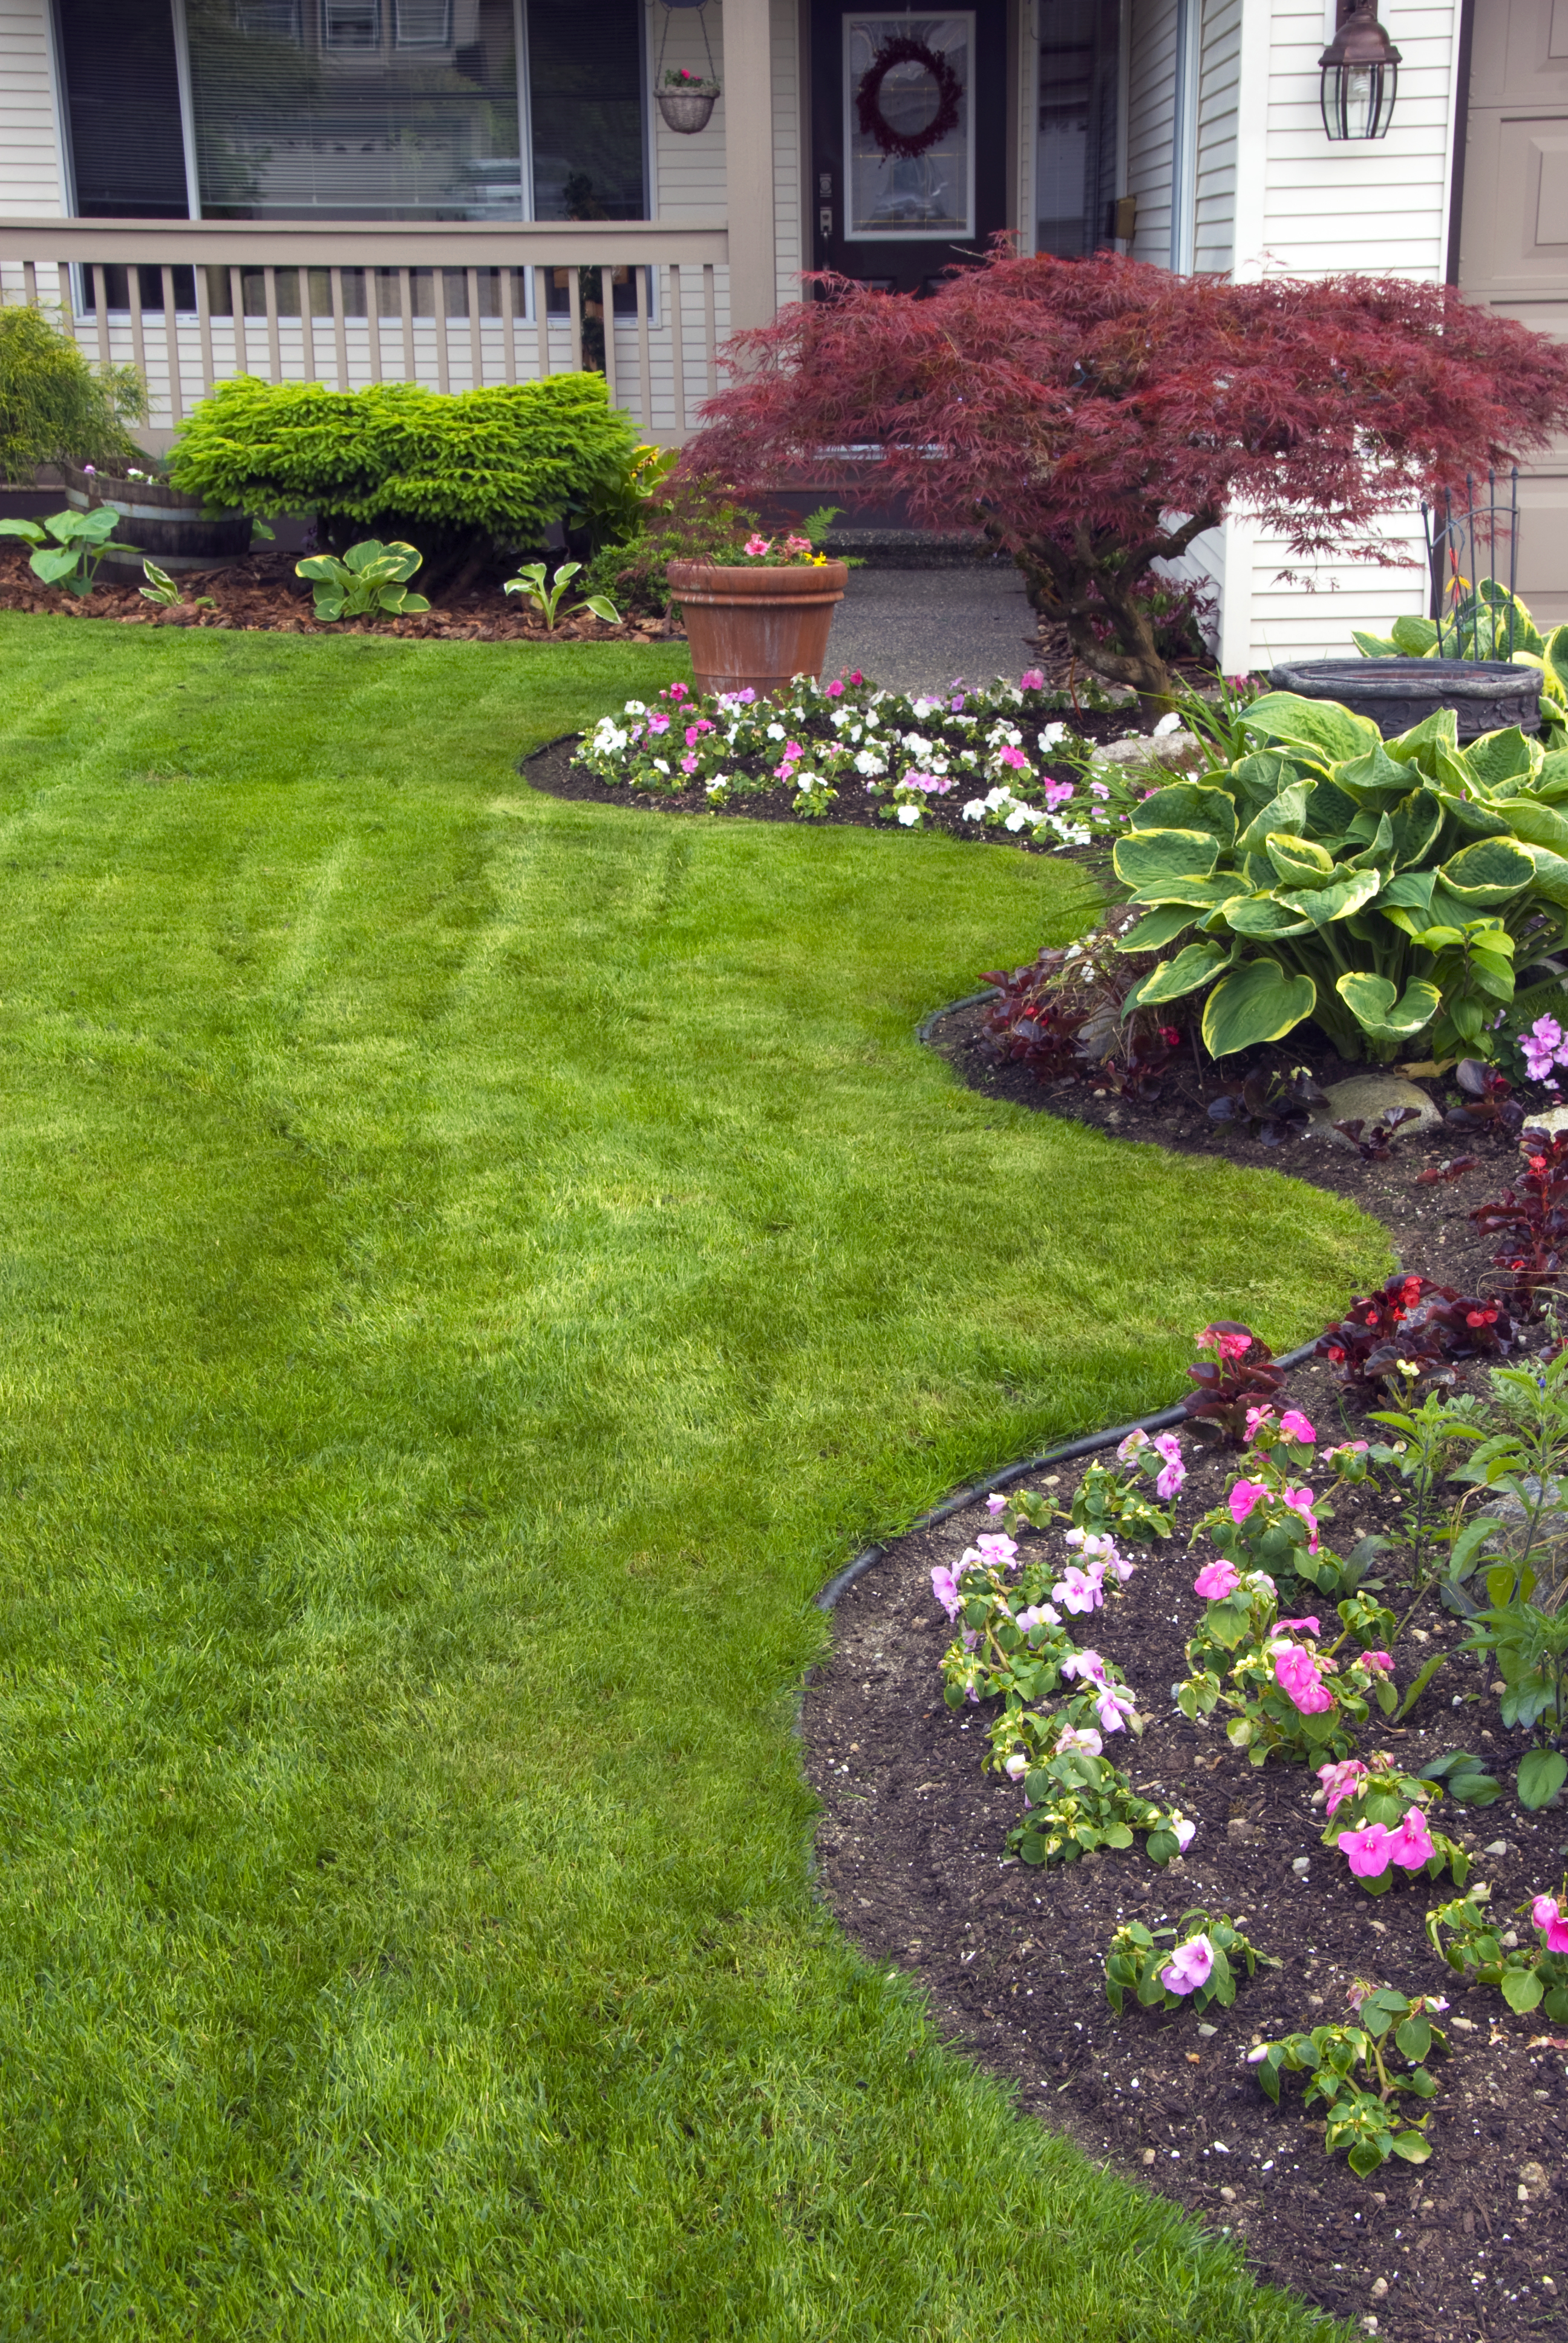 Remodelaholic | 5 Front Yard Landscaping Ideas You Can ... on Landscape Front Yard Ideas id=61978